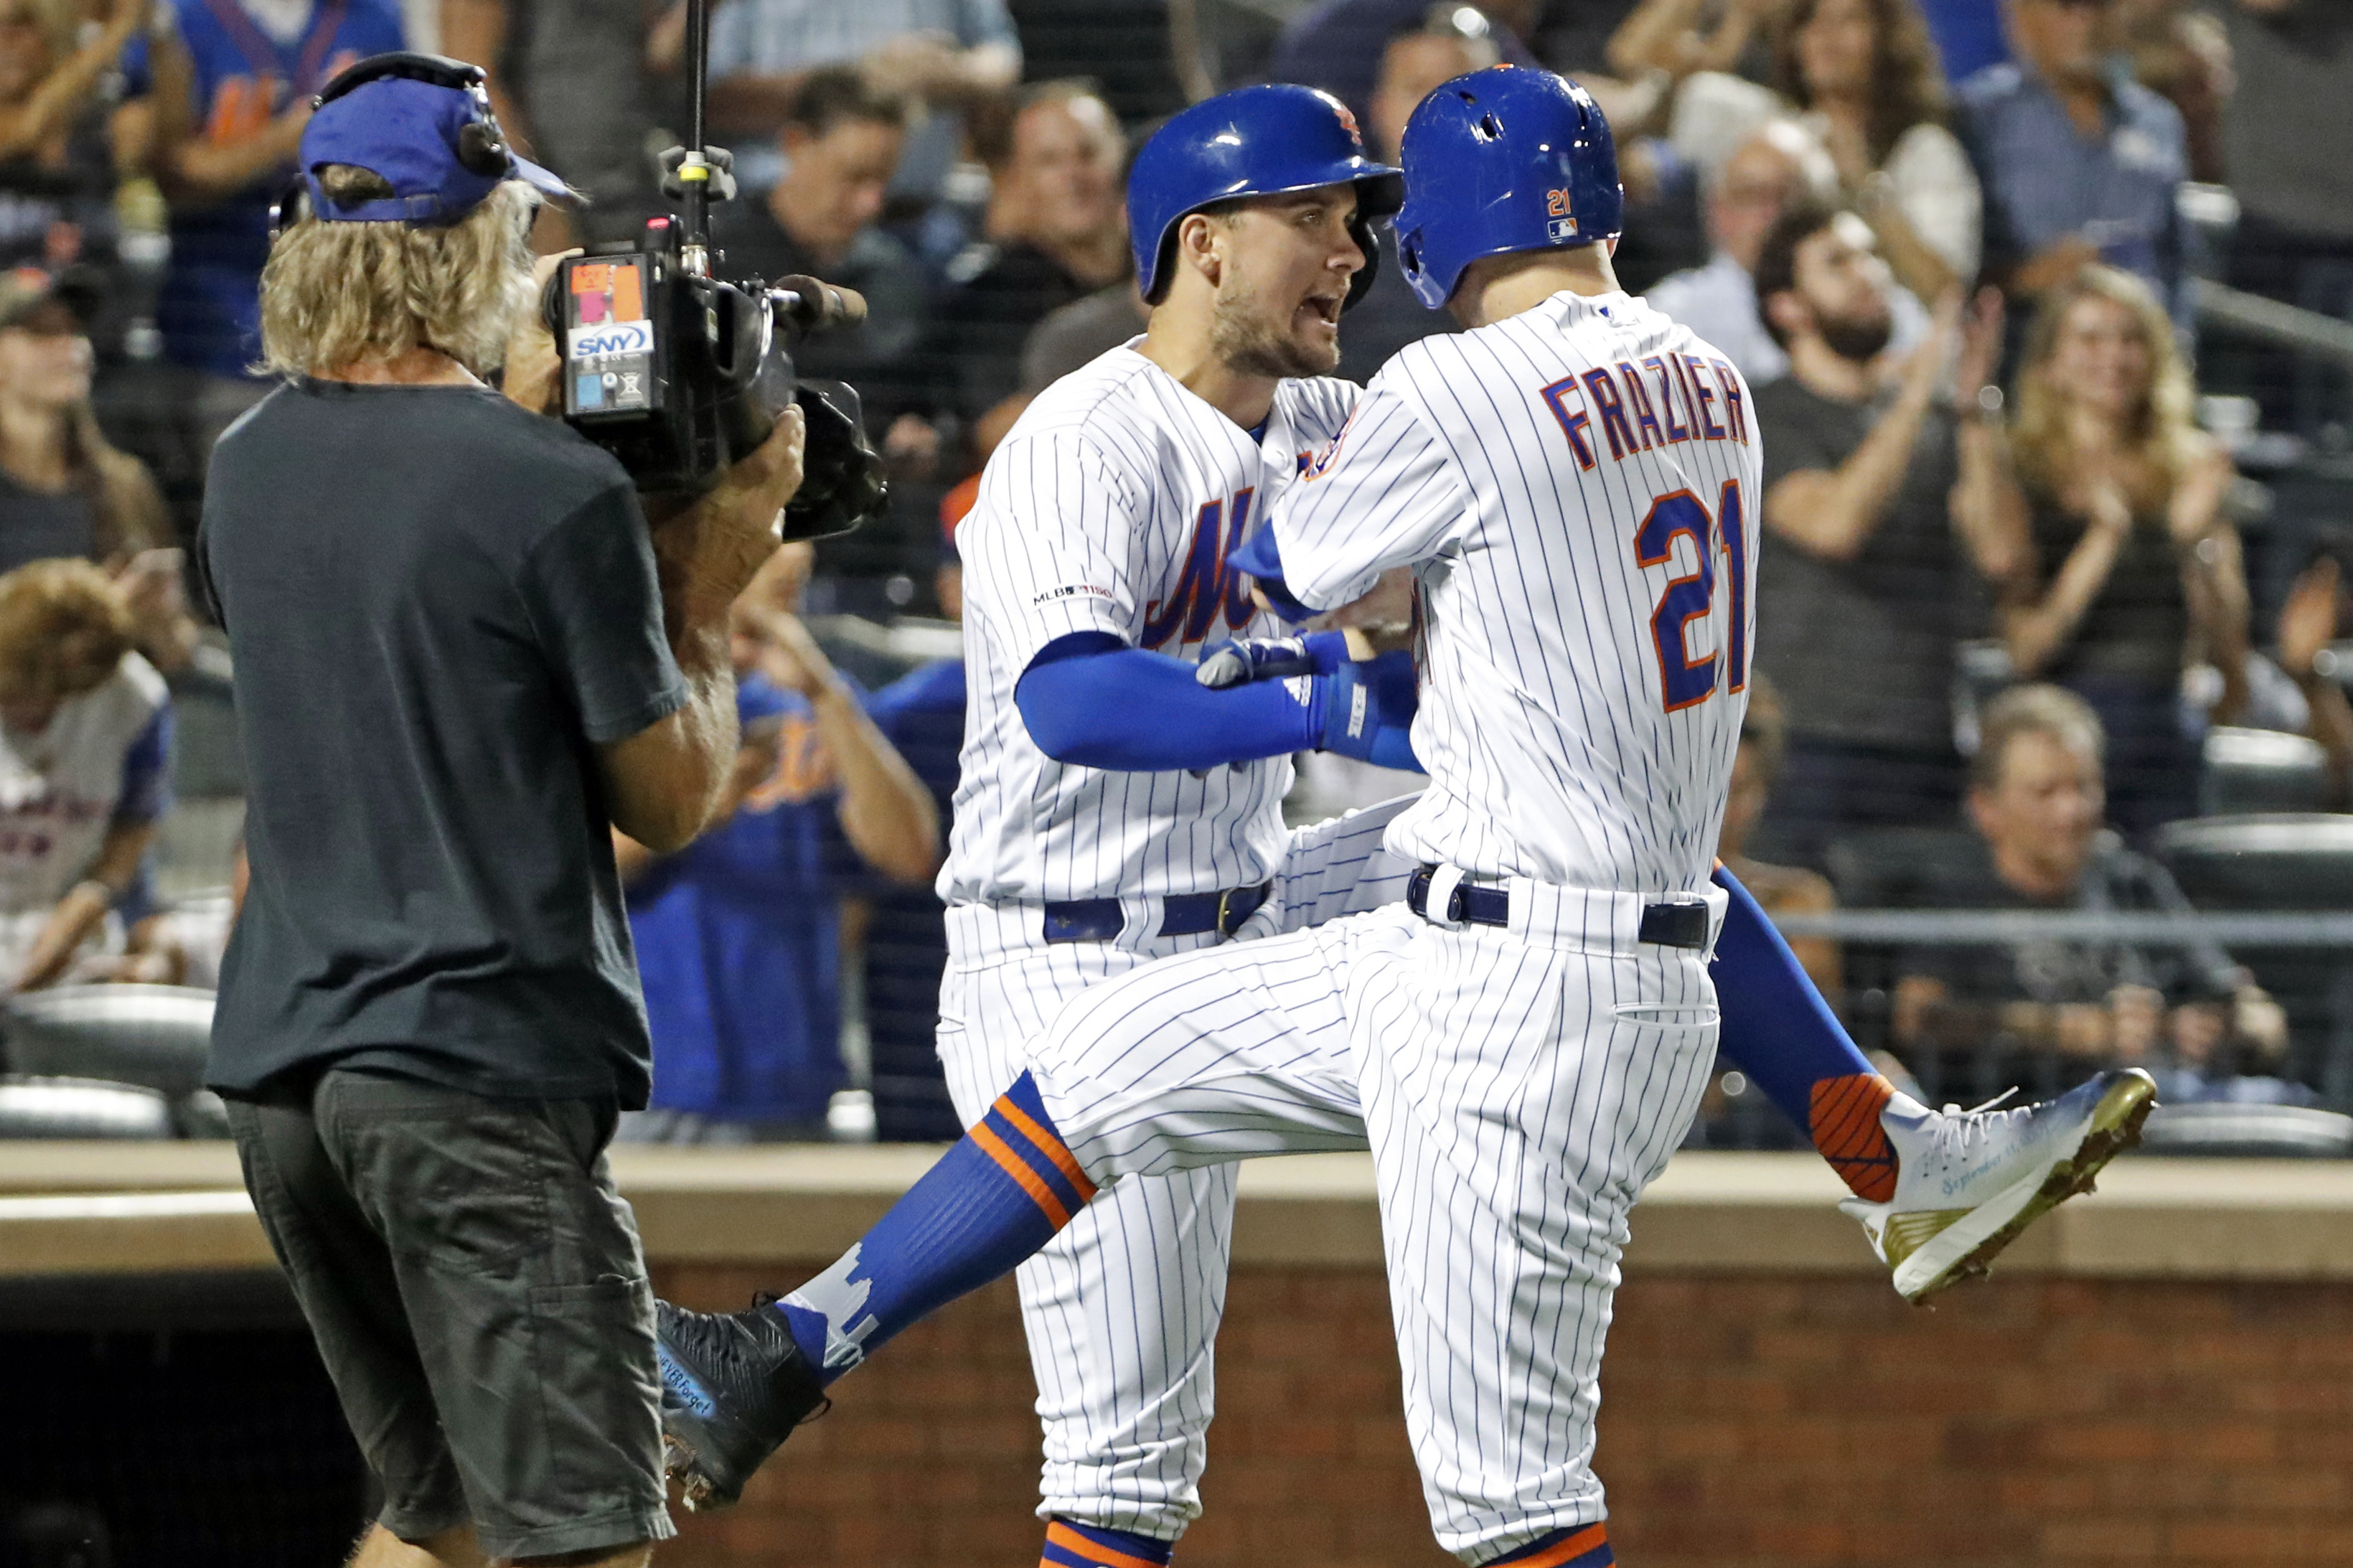 New York Mets score 9 runs on 11 hits in win on 9/11 anniversary